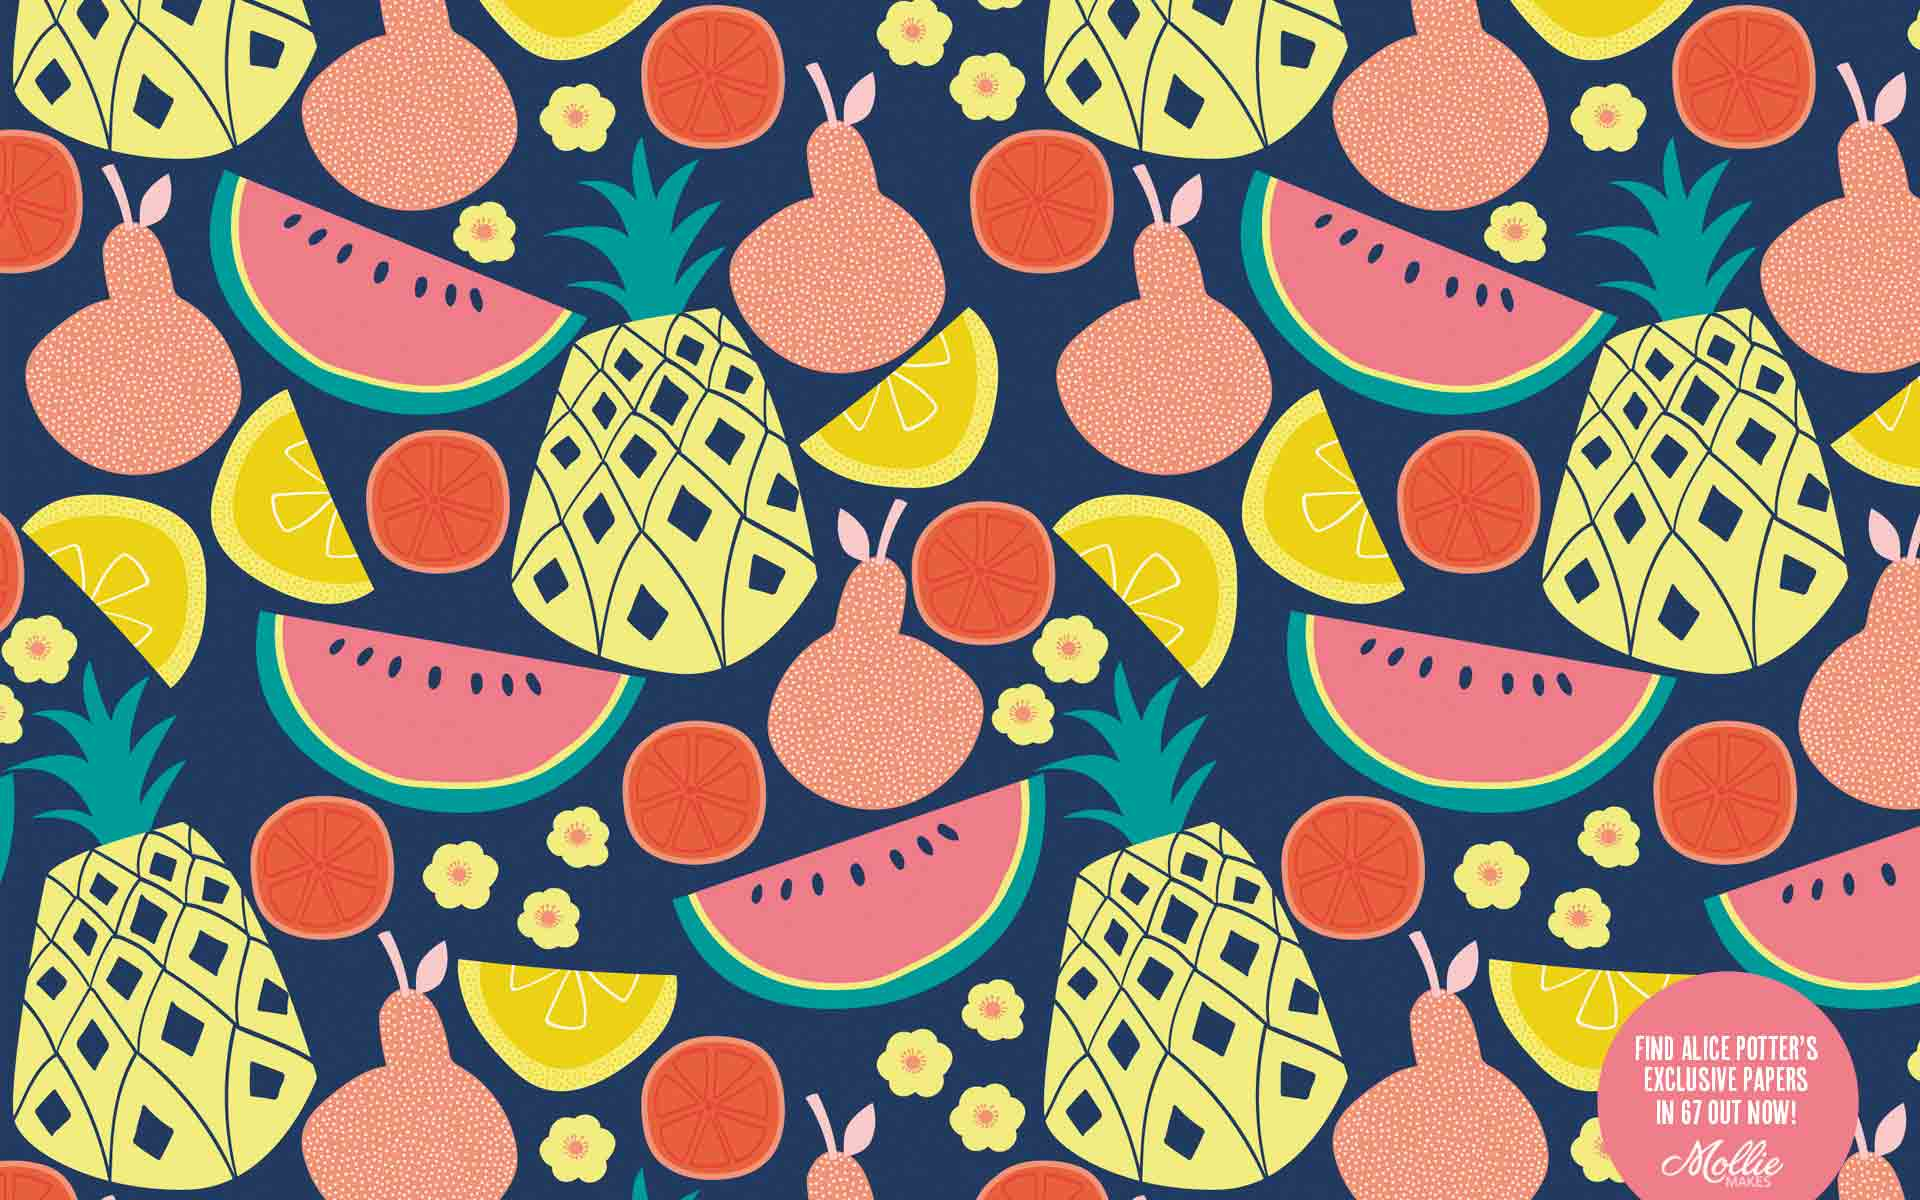 Free Wallpaper Backgrounds By Alice Potter Desktop - Summer Pattern Desktop Background - HD Wallpaper